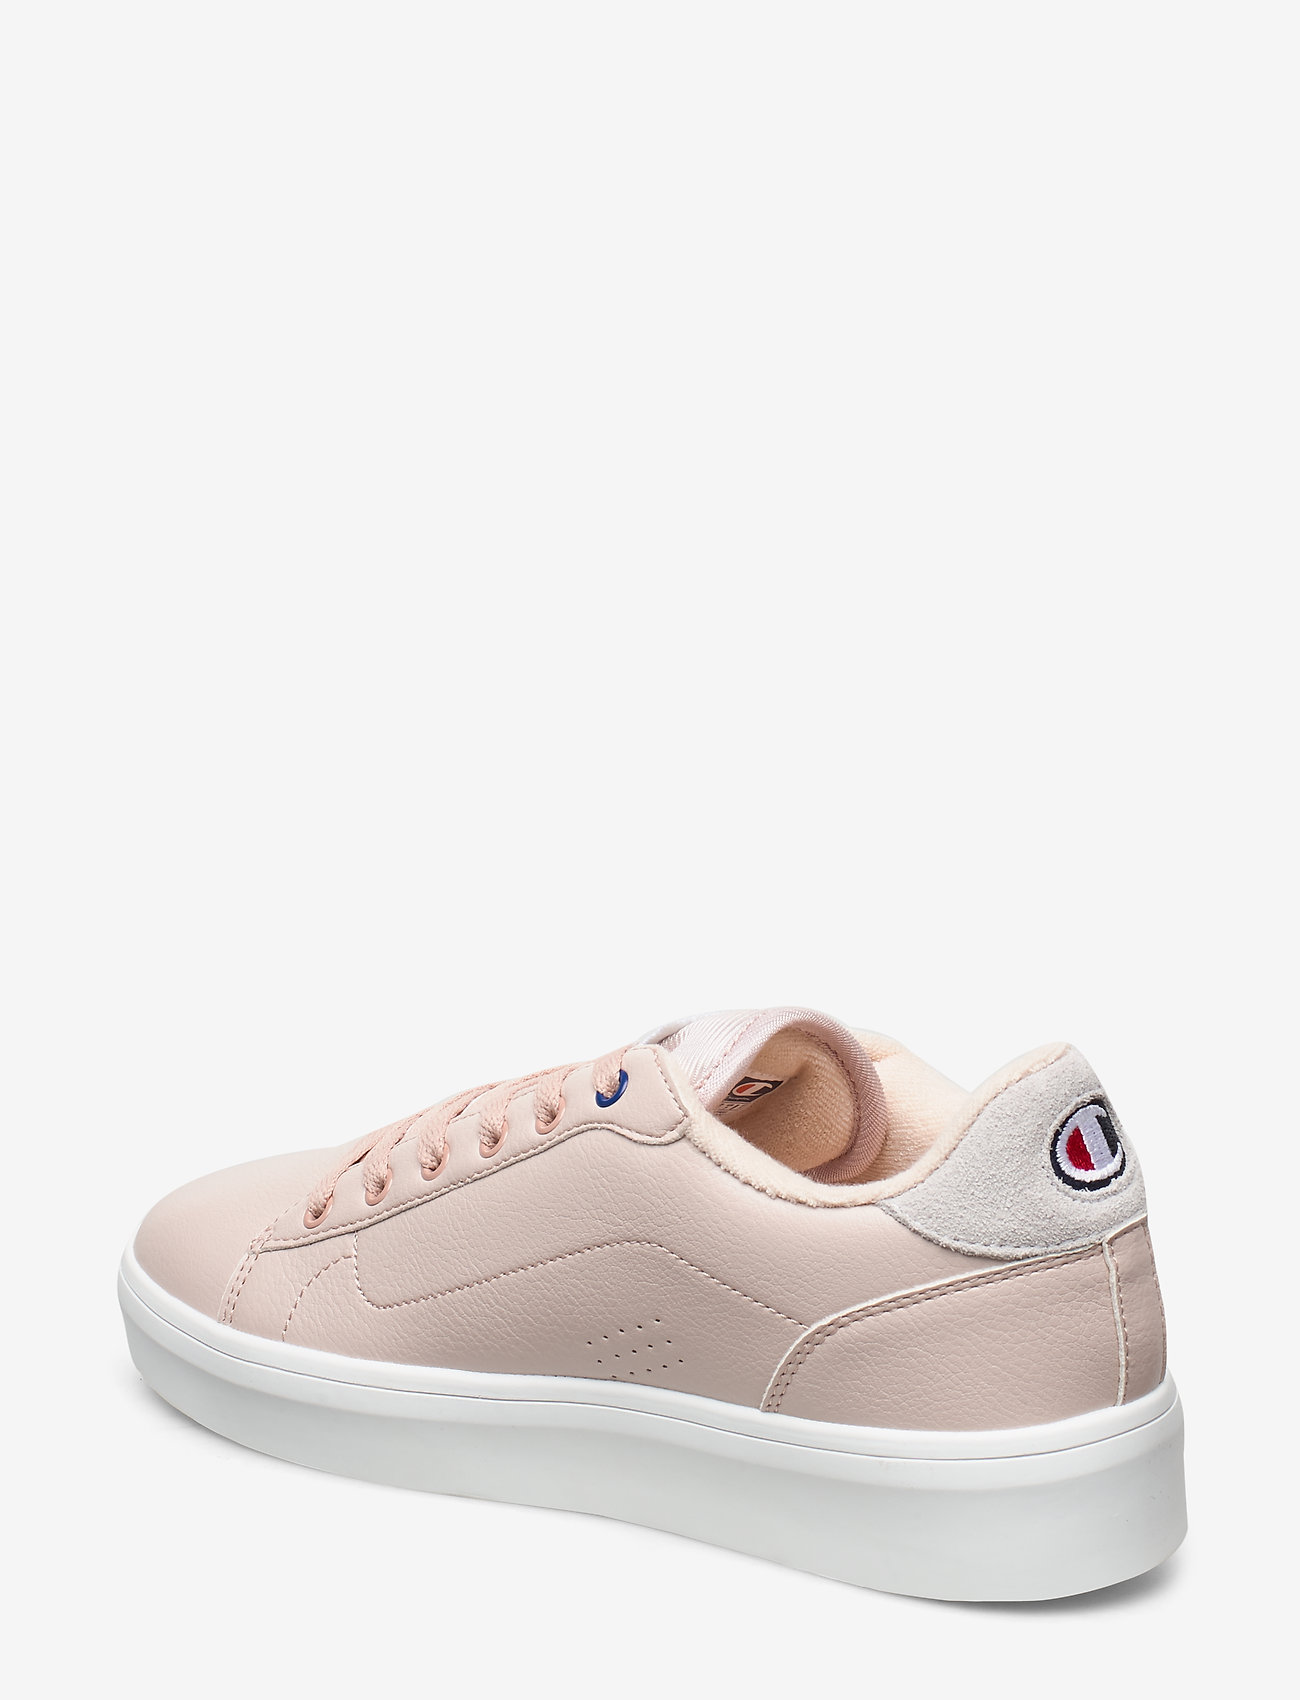 Champion Low Cut Shoe San Diego - Sneakers Peach Whip